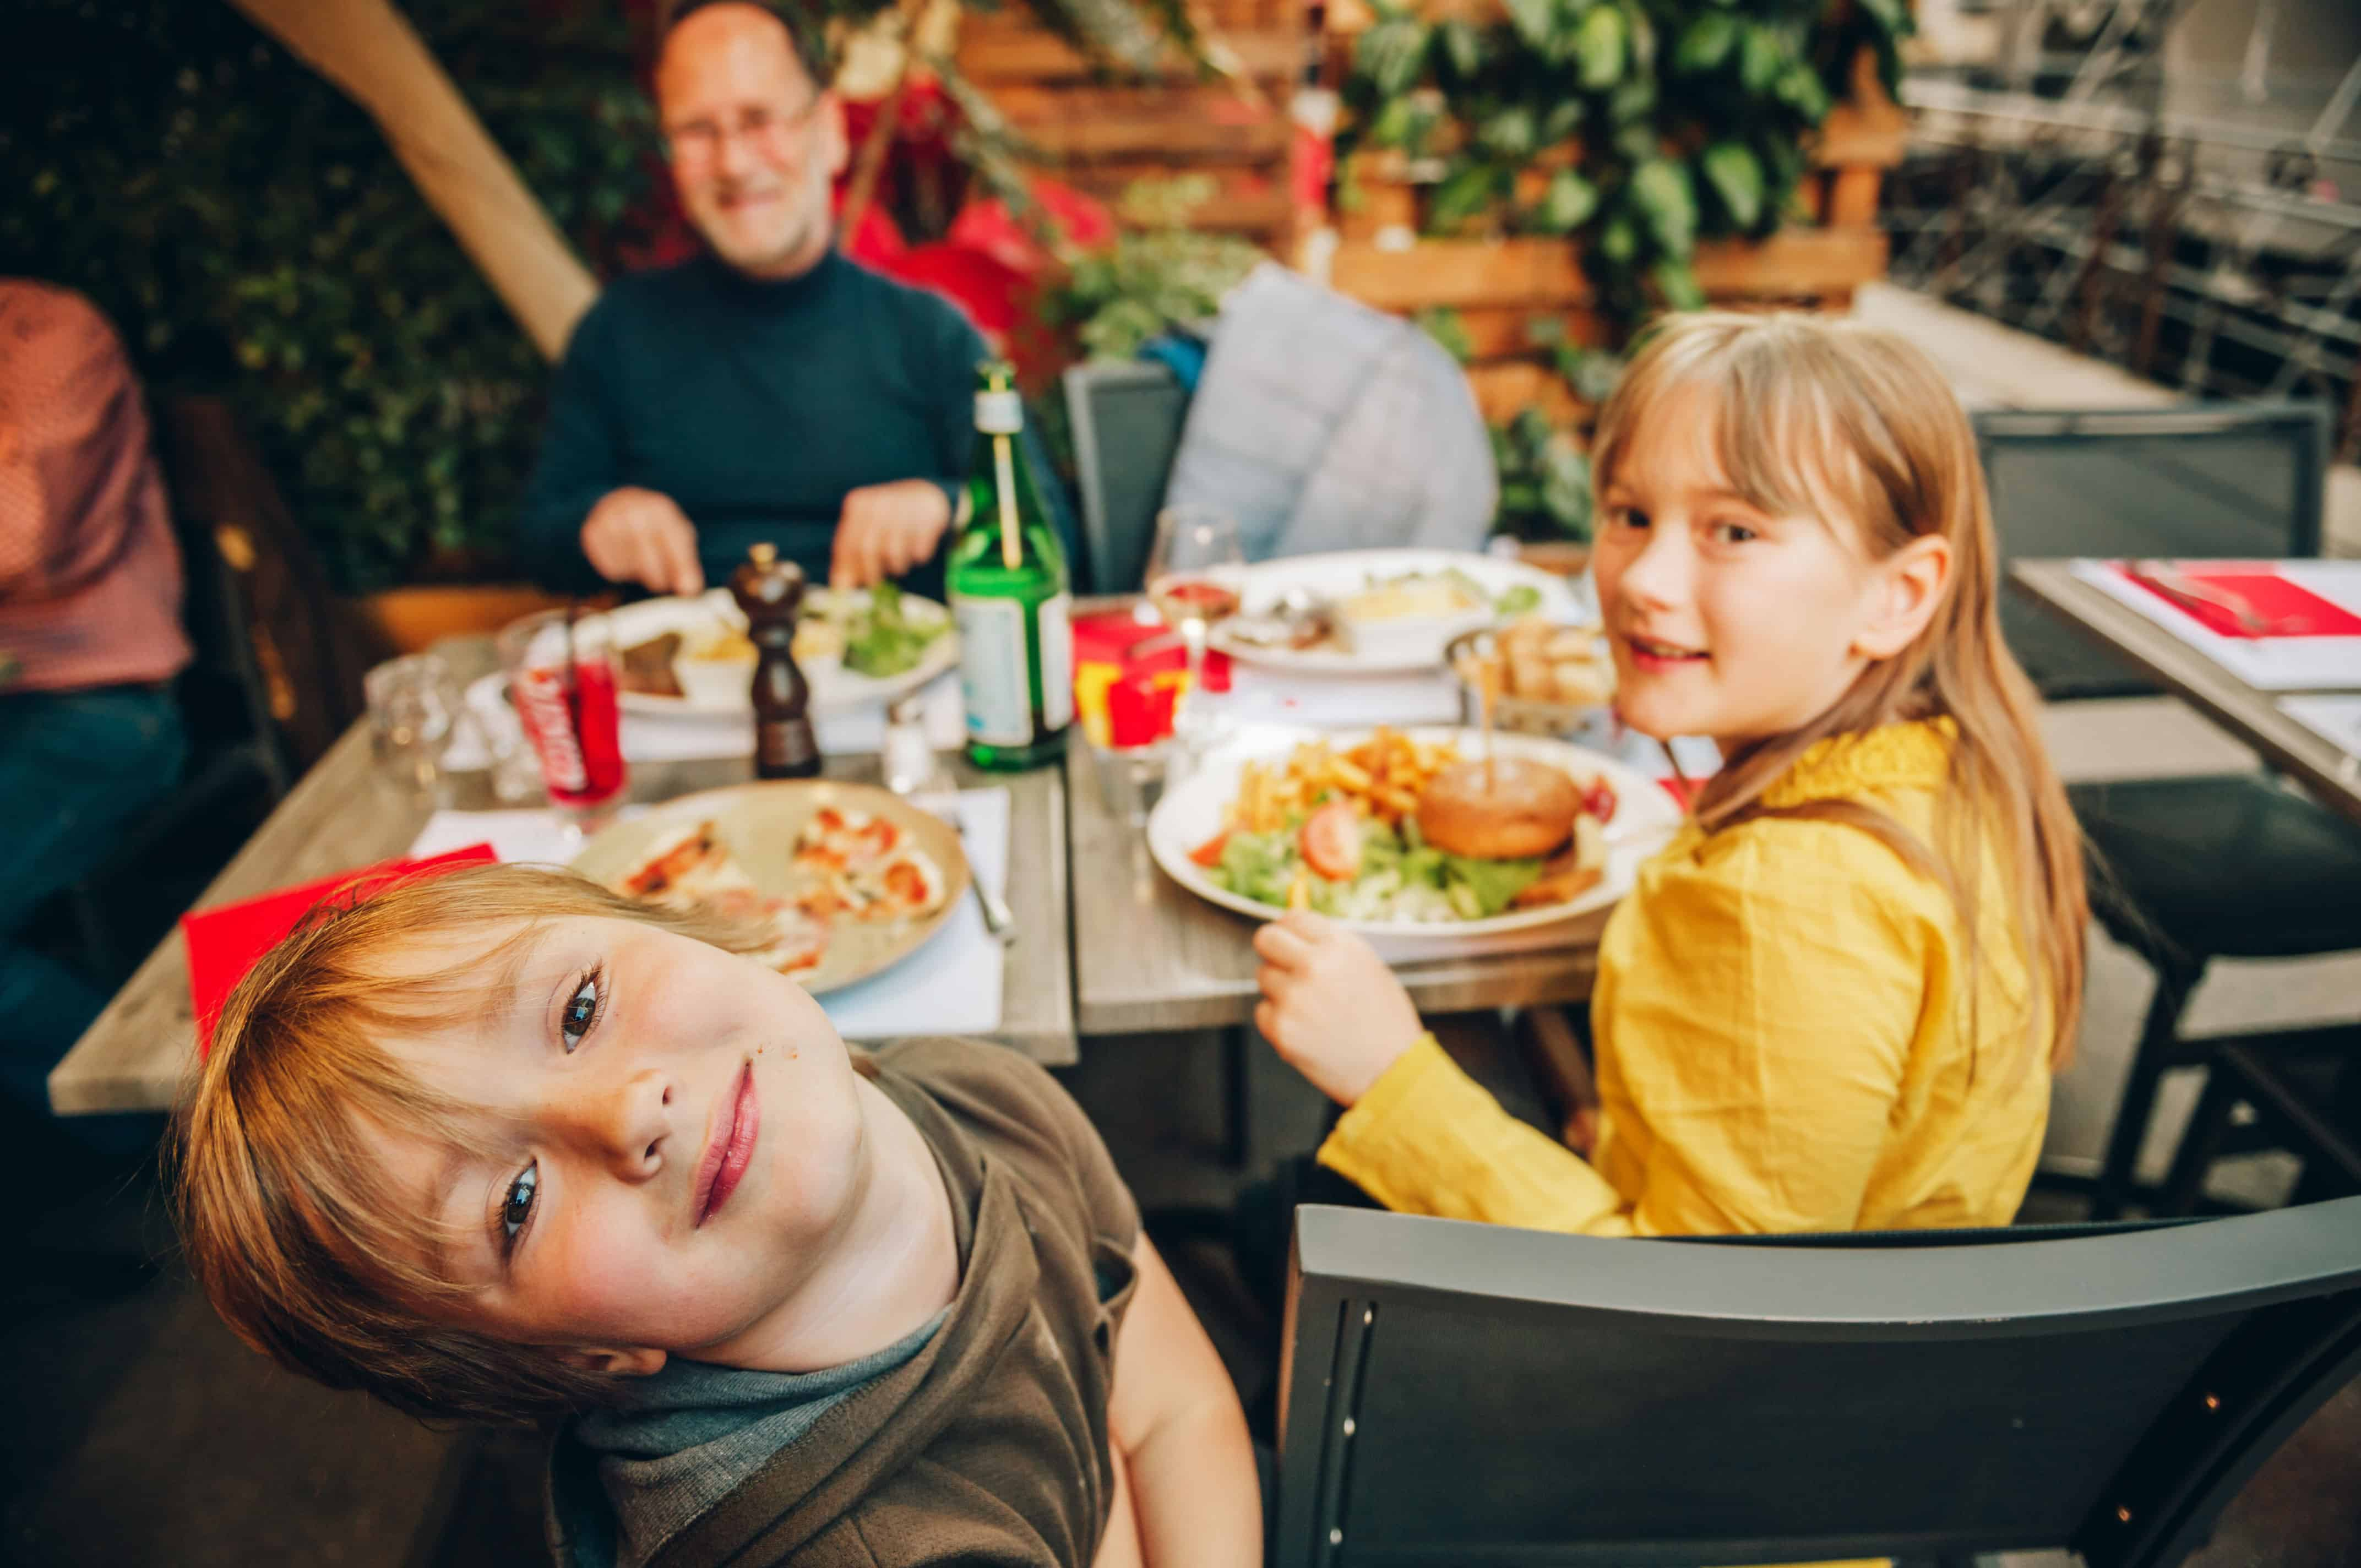 Get a family meal you don't have to cook